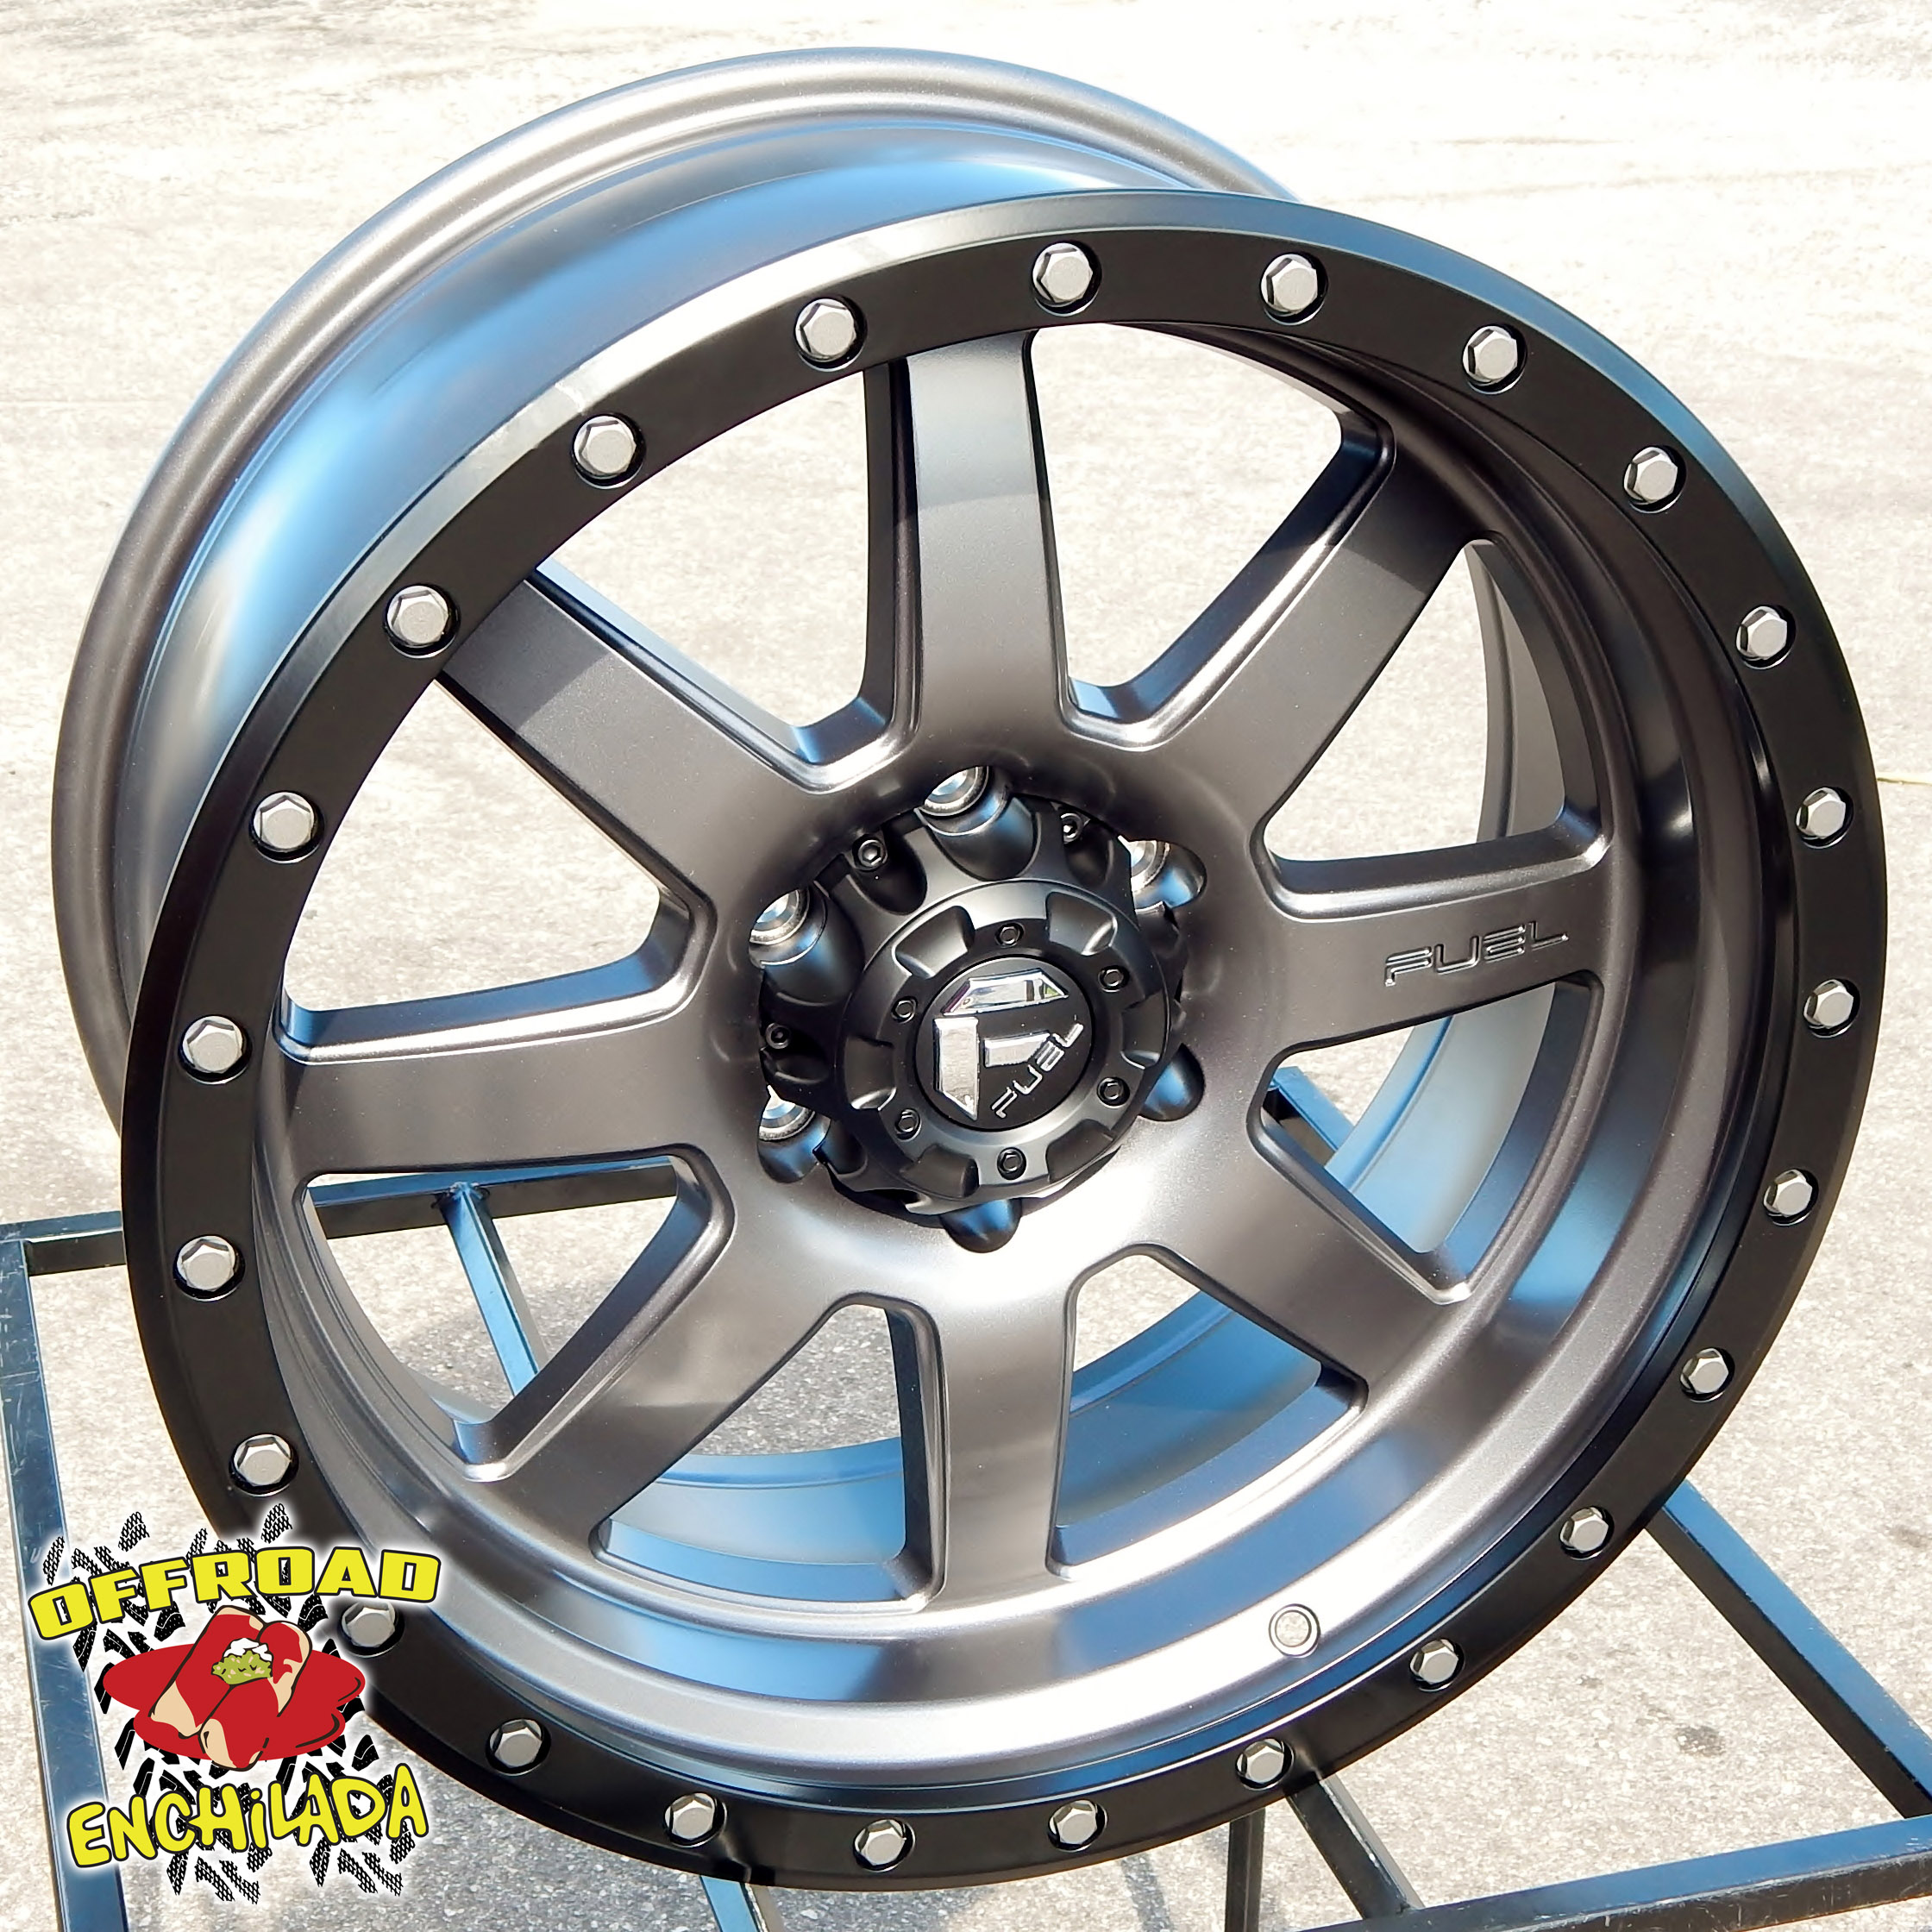 Fuel Trophy Wheels >> Details About 20x9 Gray Black Fuel Trophy Wheels Rims Chevy Silverado Gmc Sierra Tacoma Tahoe